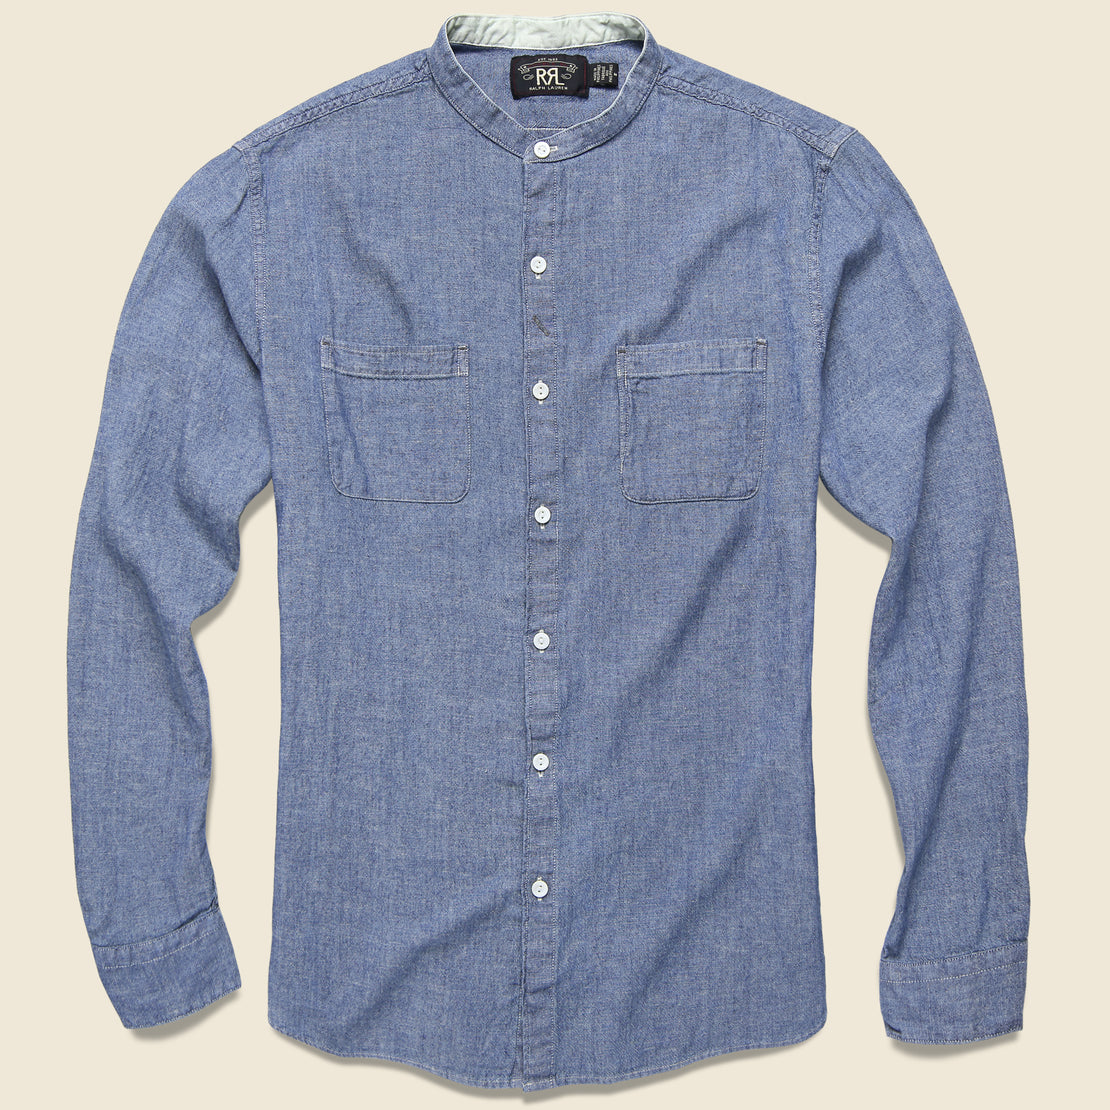 RRL Weiland Band Collar Shirt - Indigo Chambray